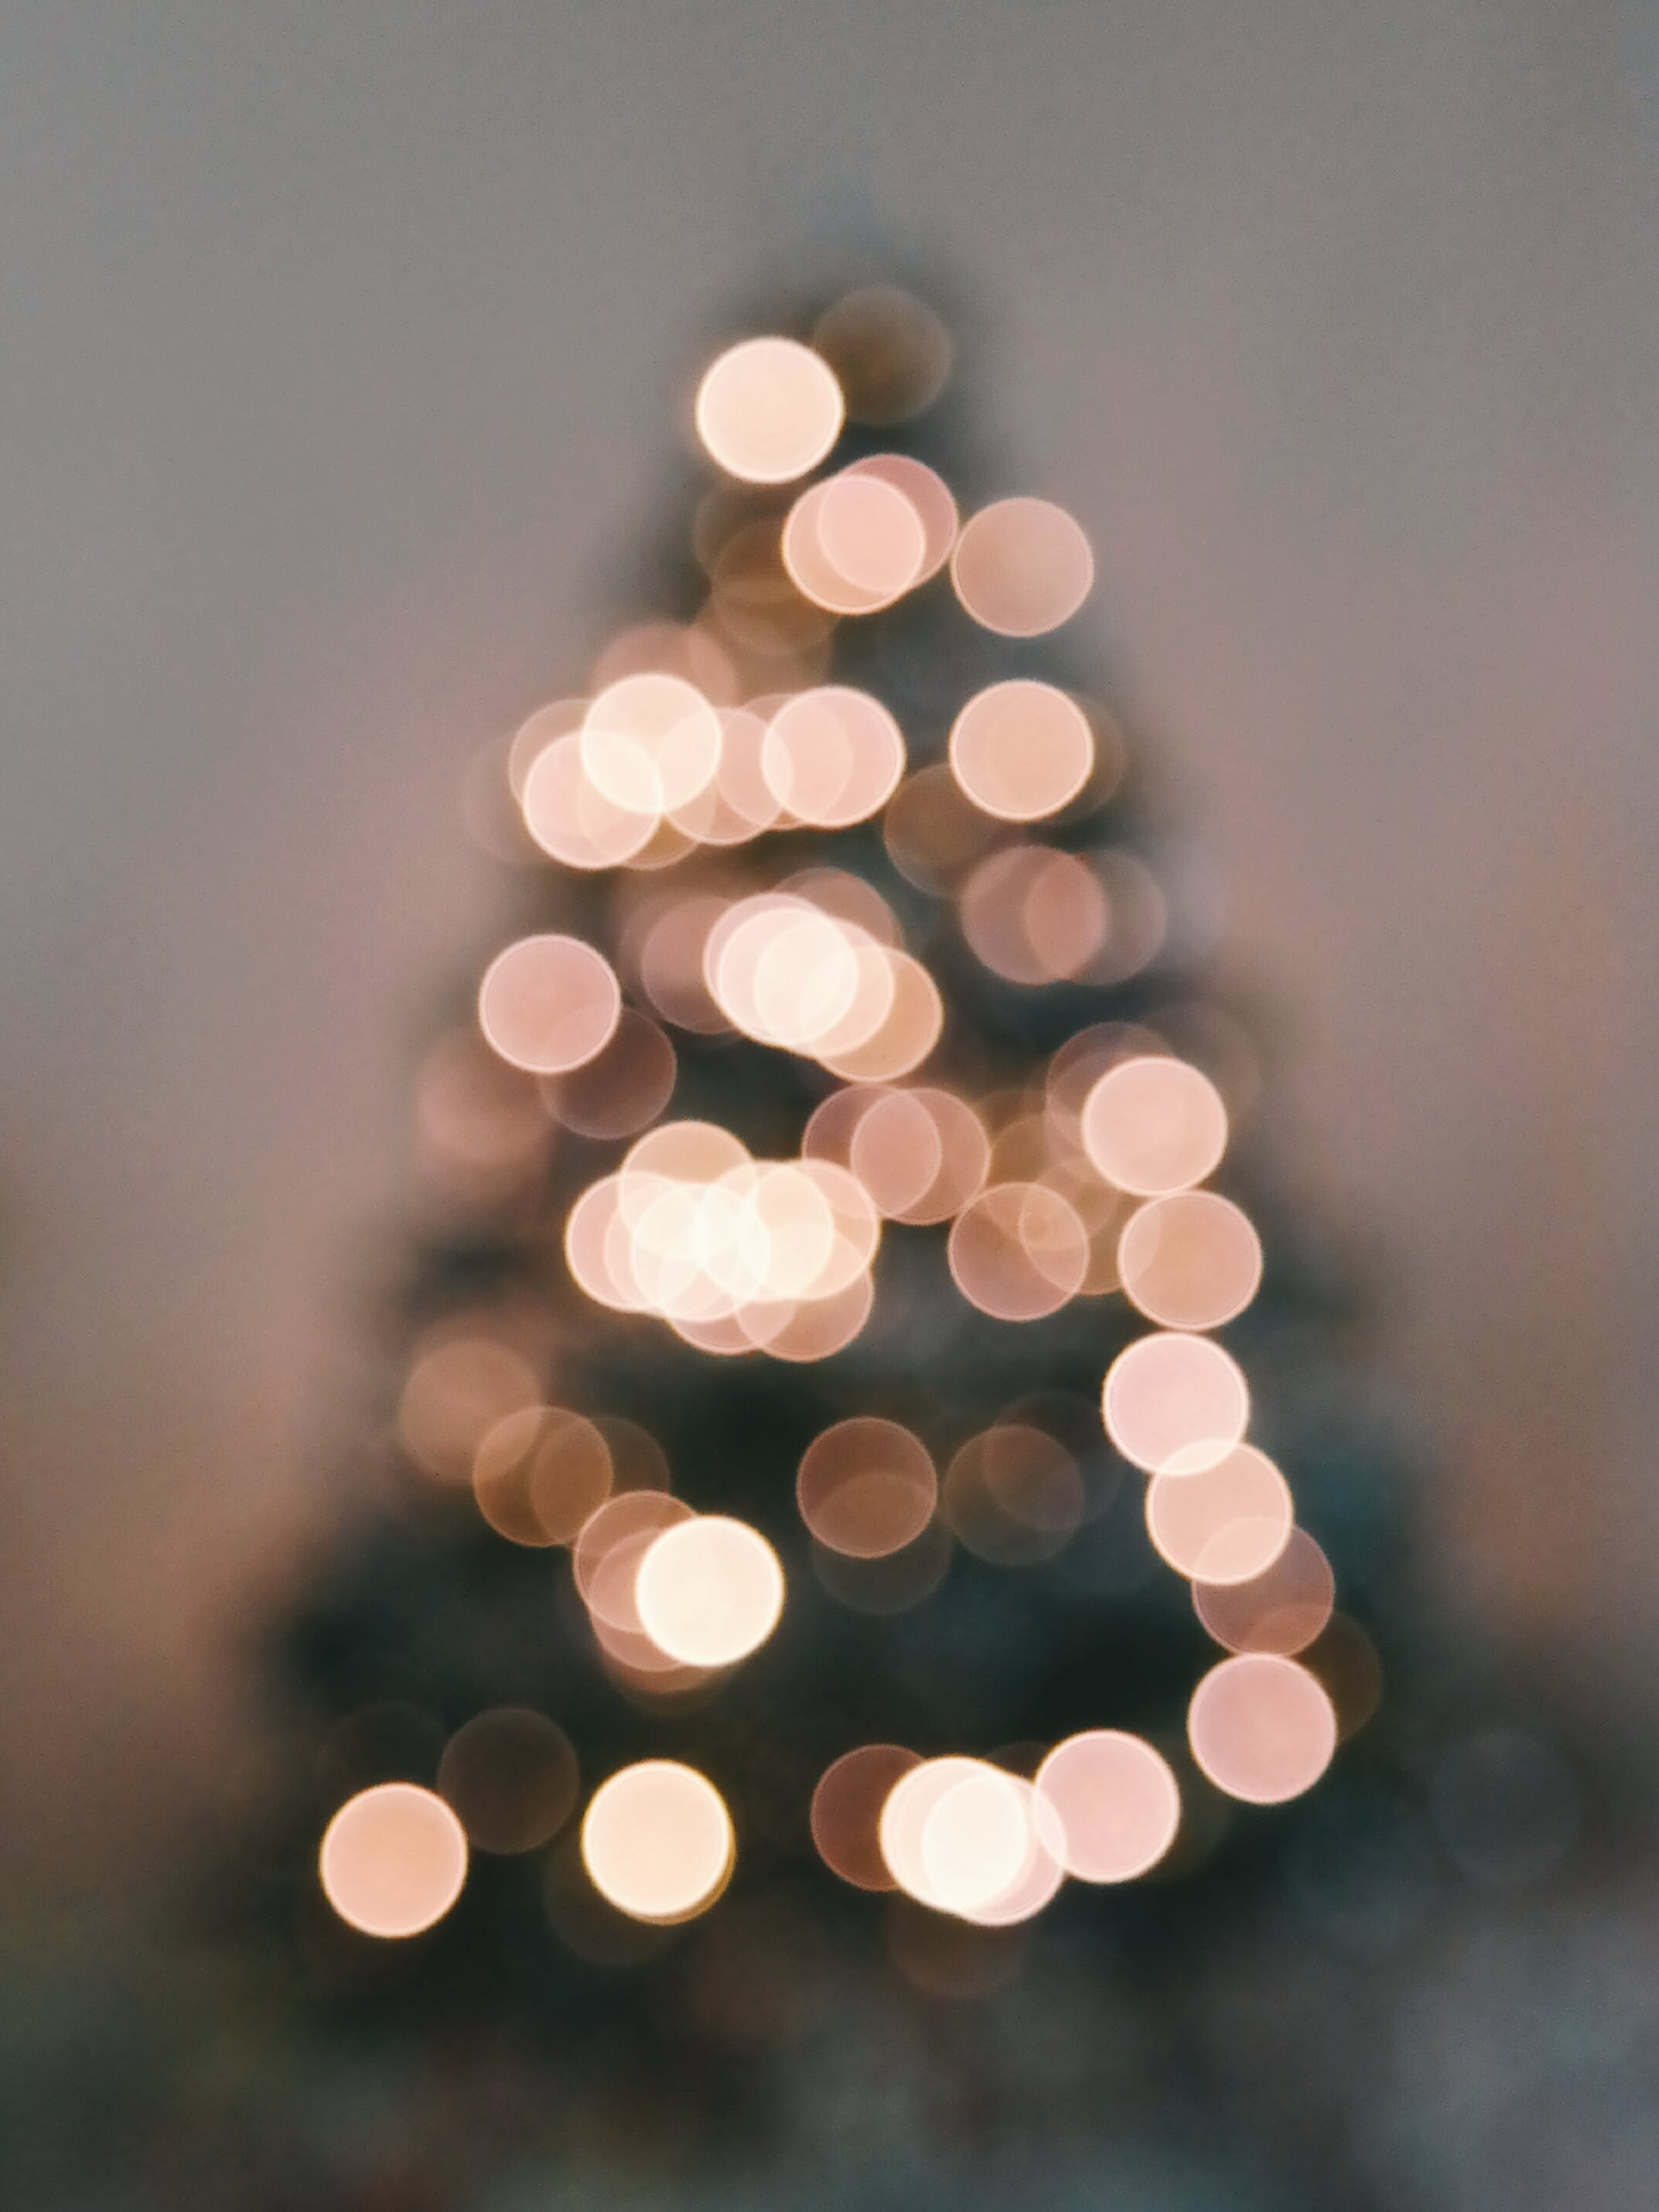 Defocused Image of Illuminated Christmas Tree Against Sky